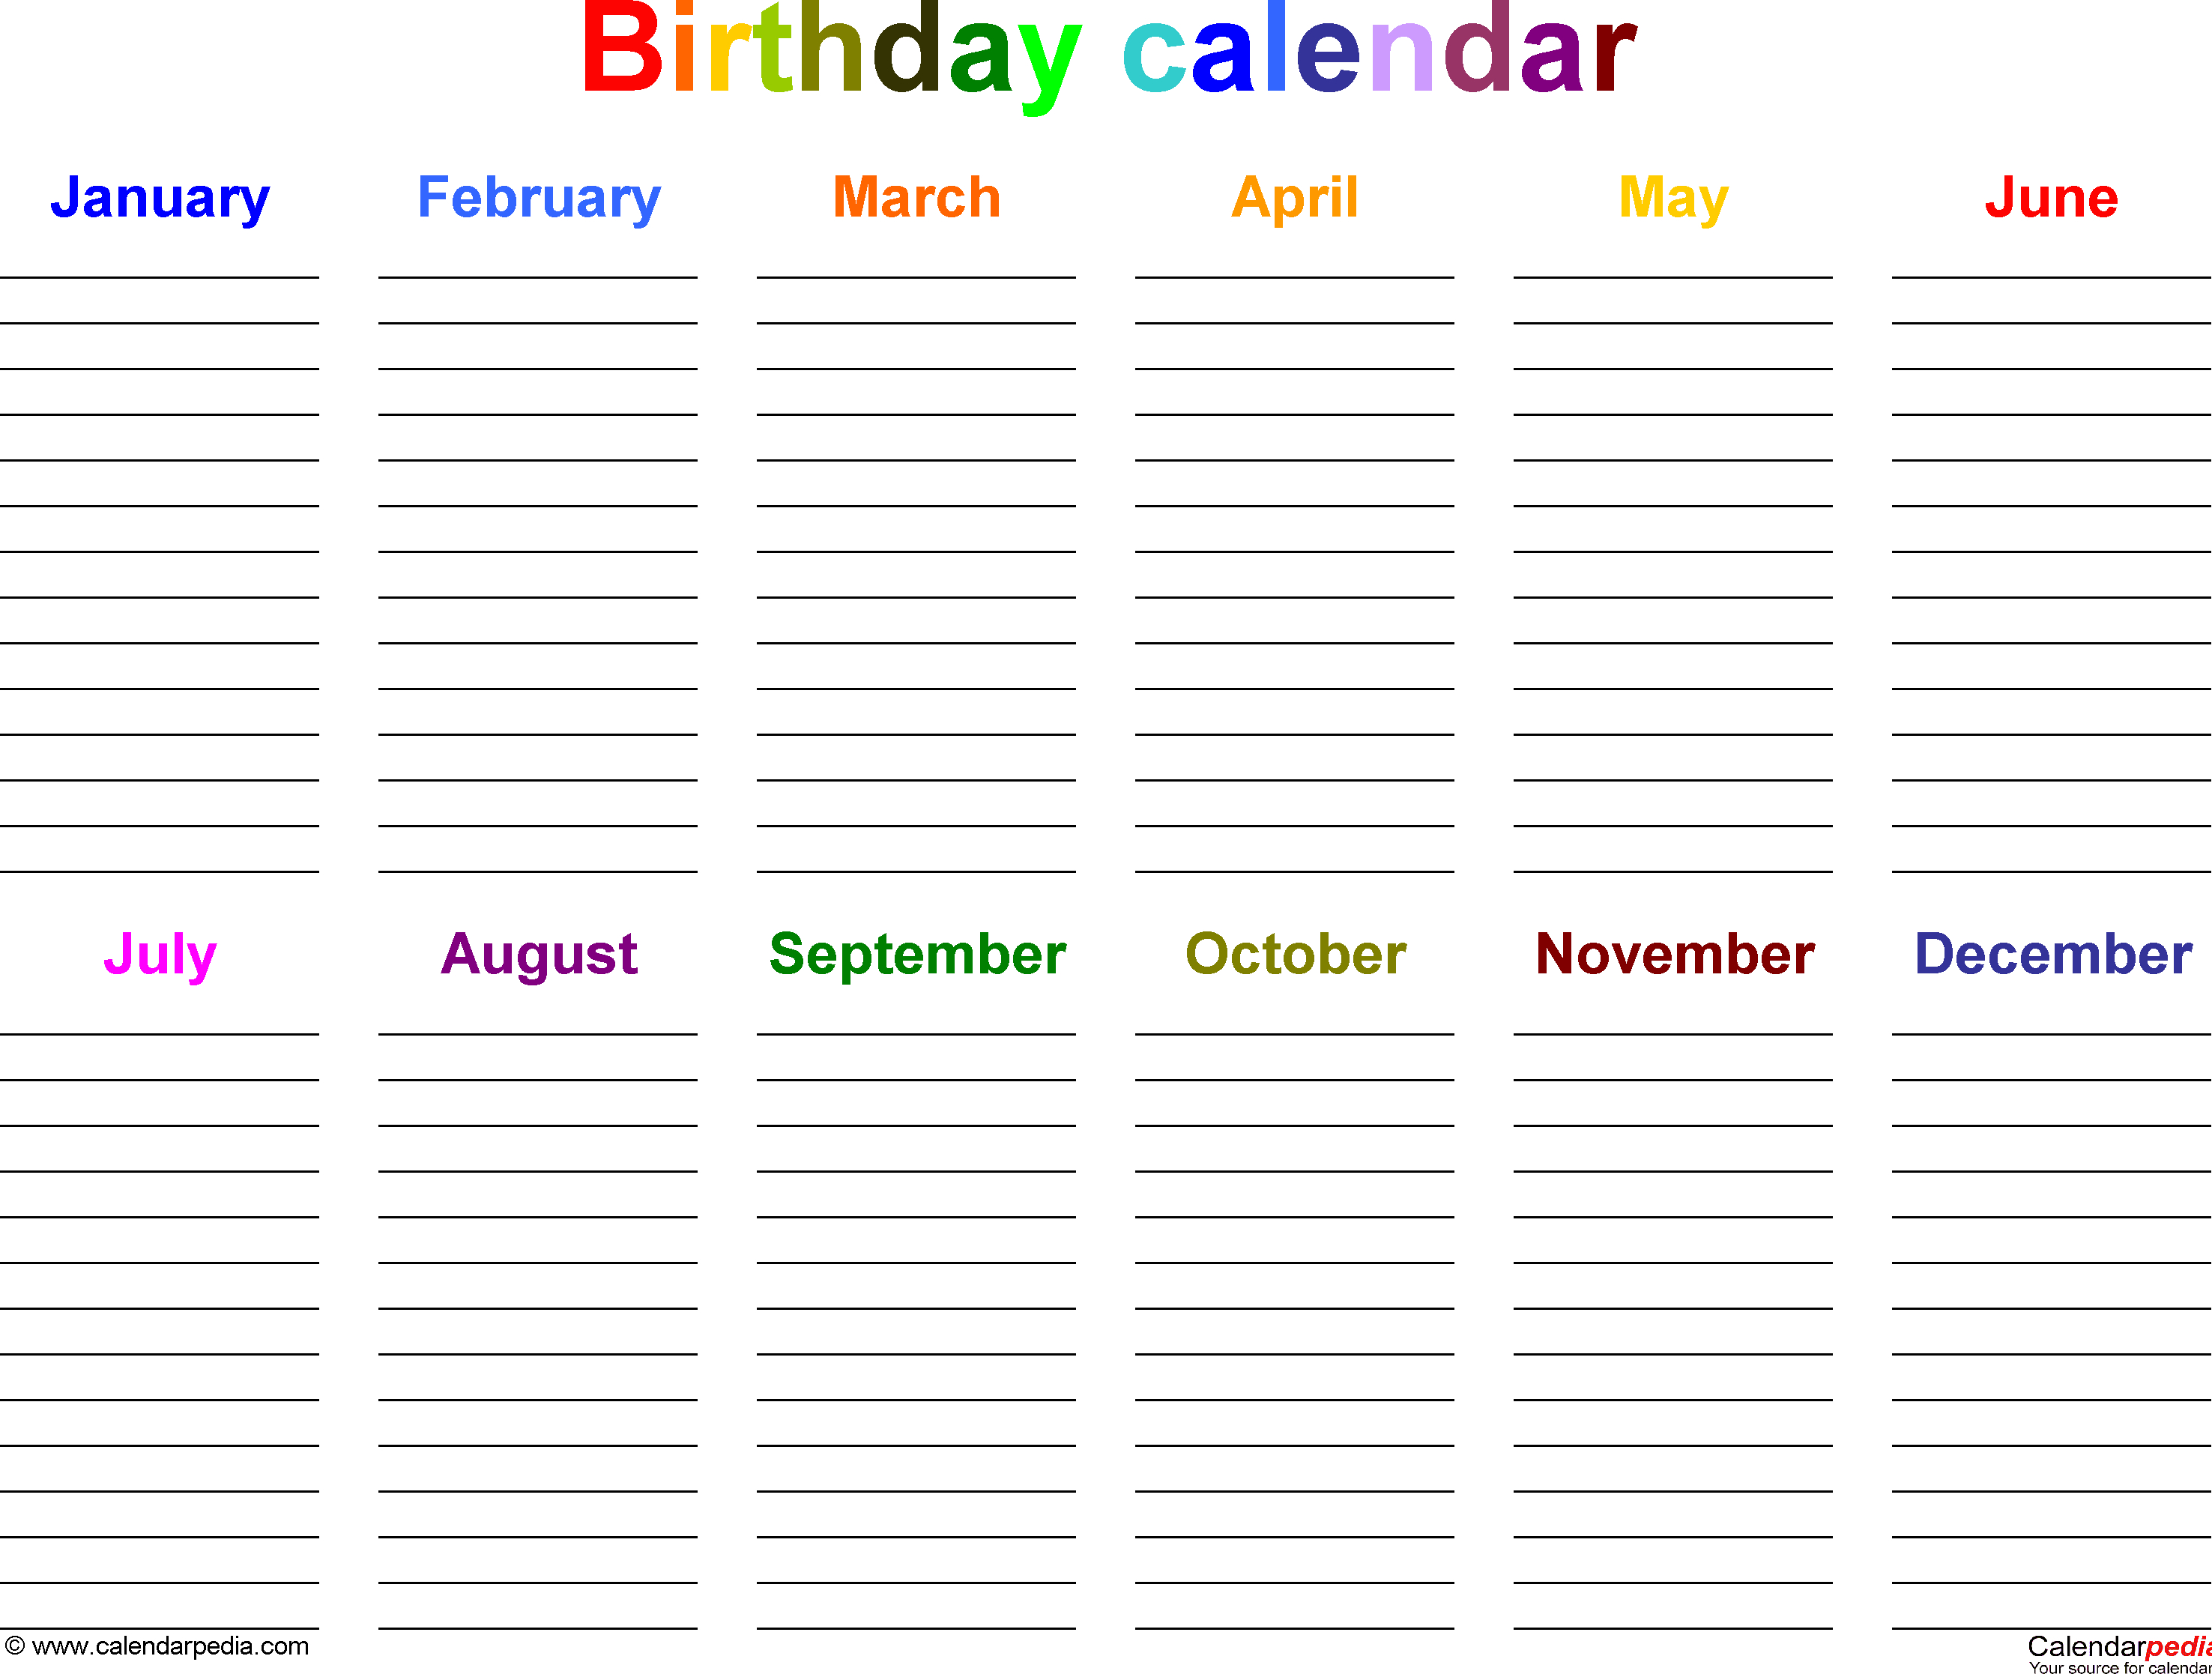 Excel Template For Birthday Calendar In Color (Landscape Orientation inside Free Printable Birthday Calendar Template